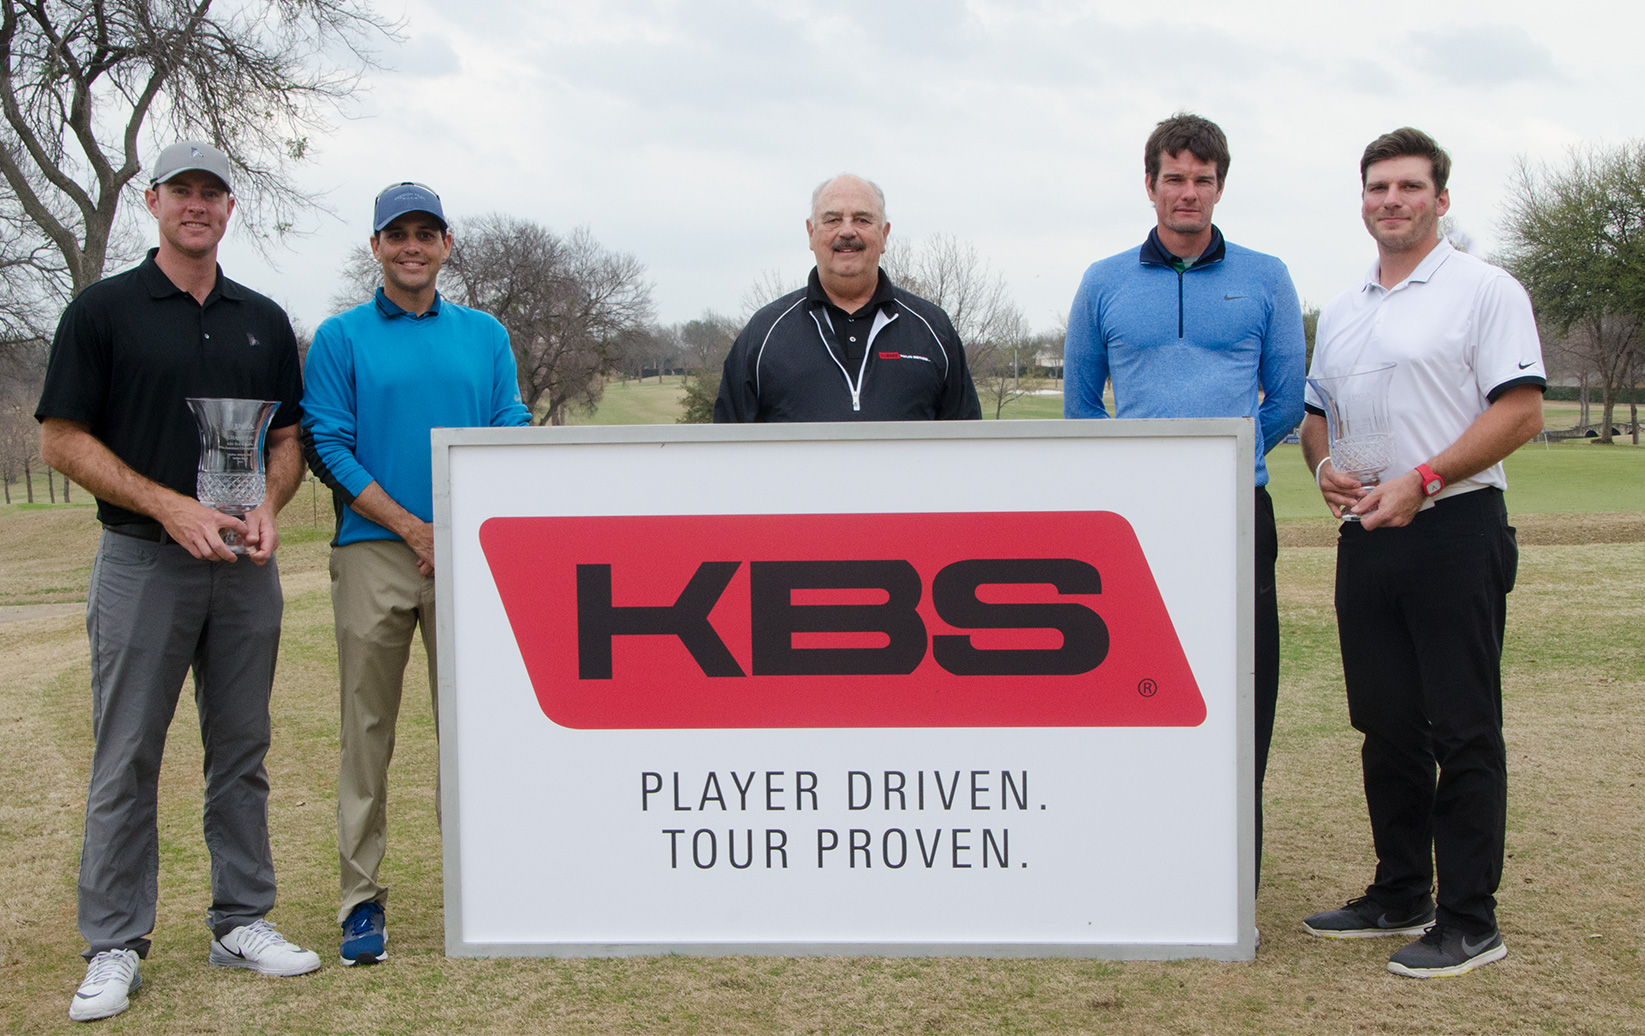 Teams of Coughlan/Alexander and Barton/Ryba Capture Titles at KBS TOUR Shafts Pro-Assistant Championship